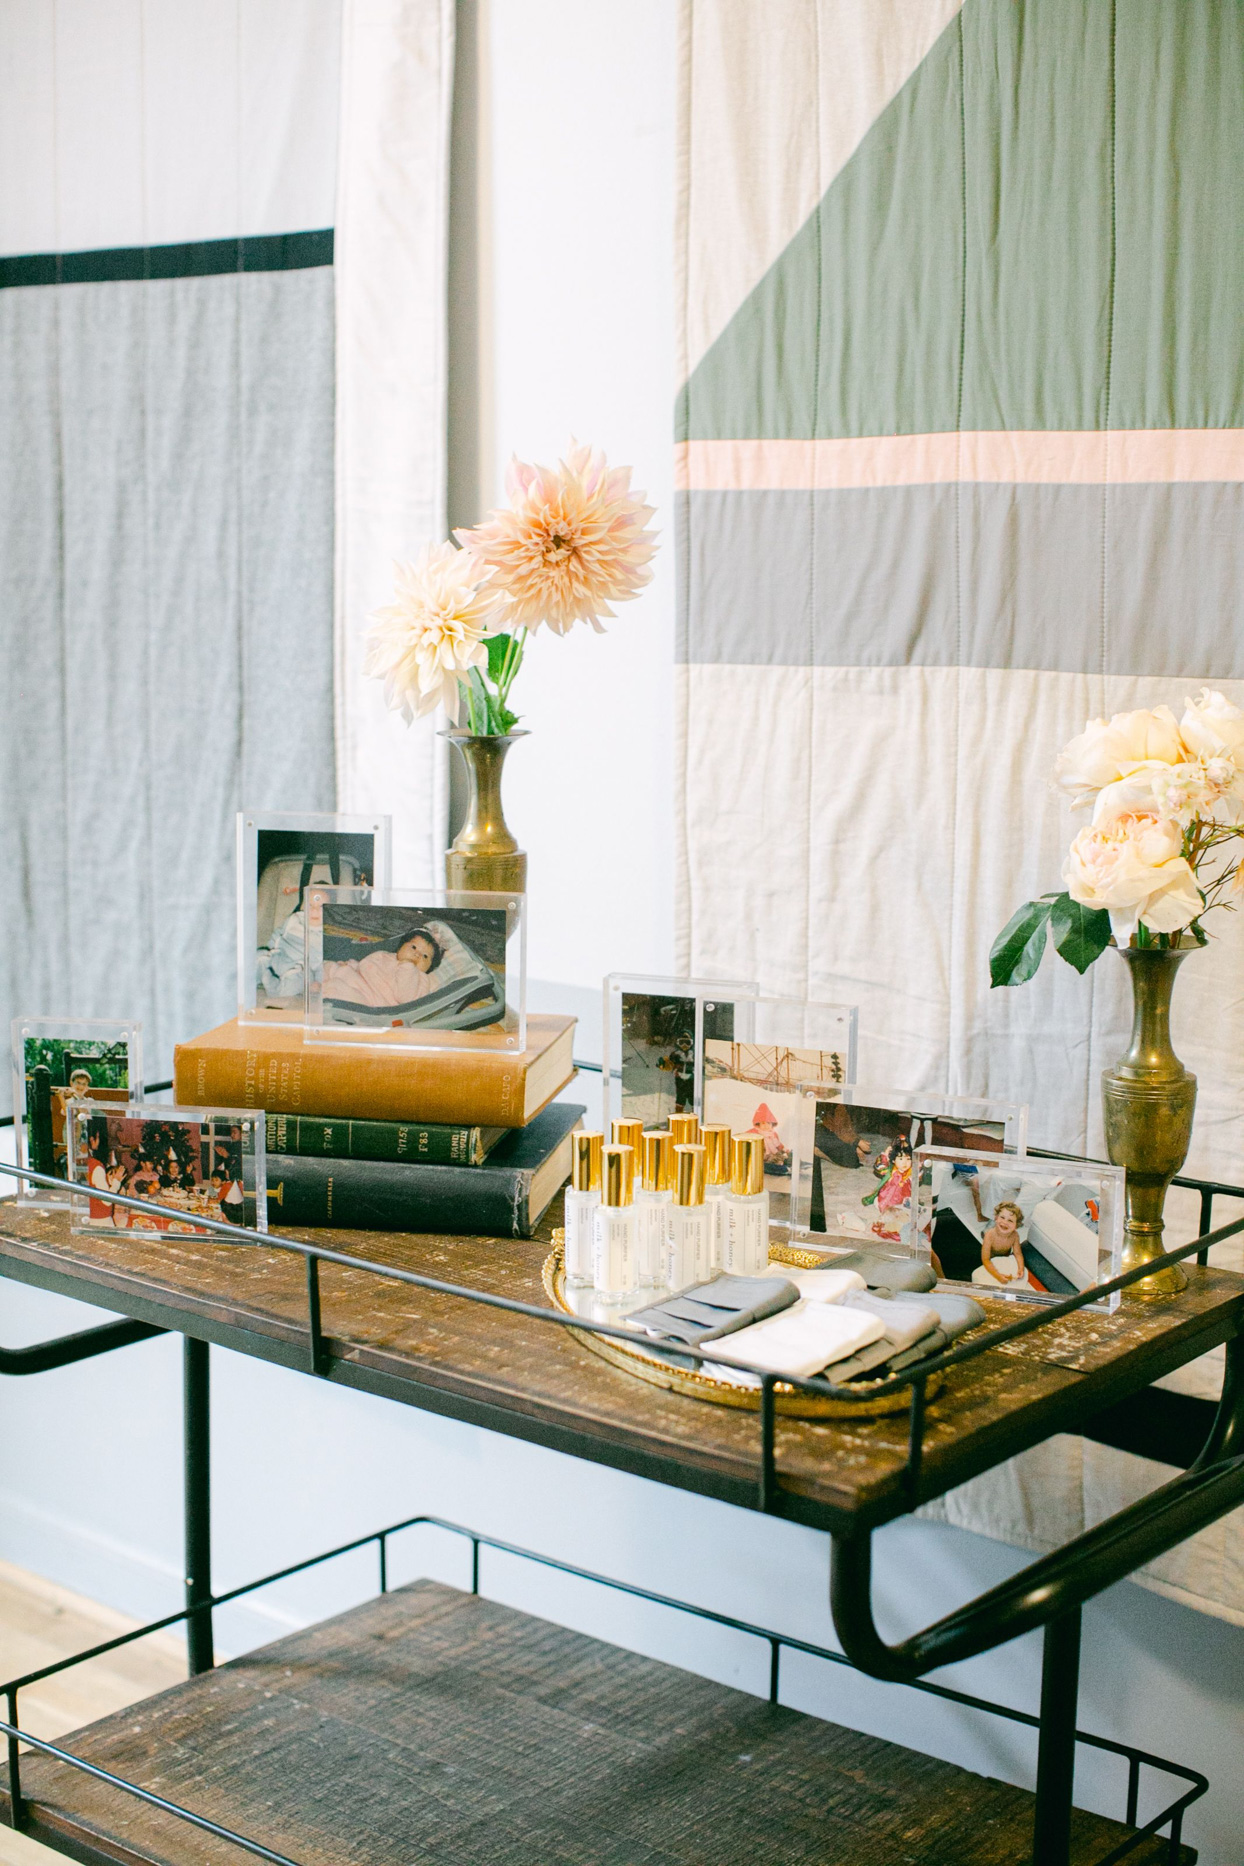 wedding cart with masks, hand sanitizers and commemorative photos